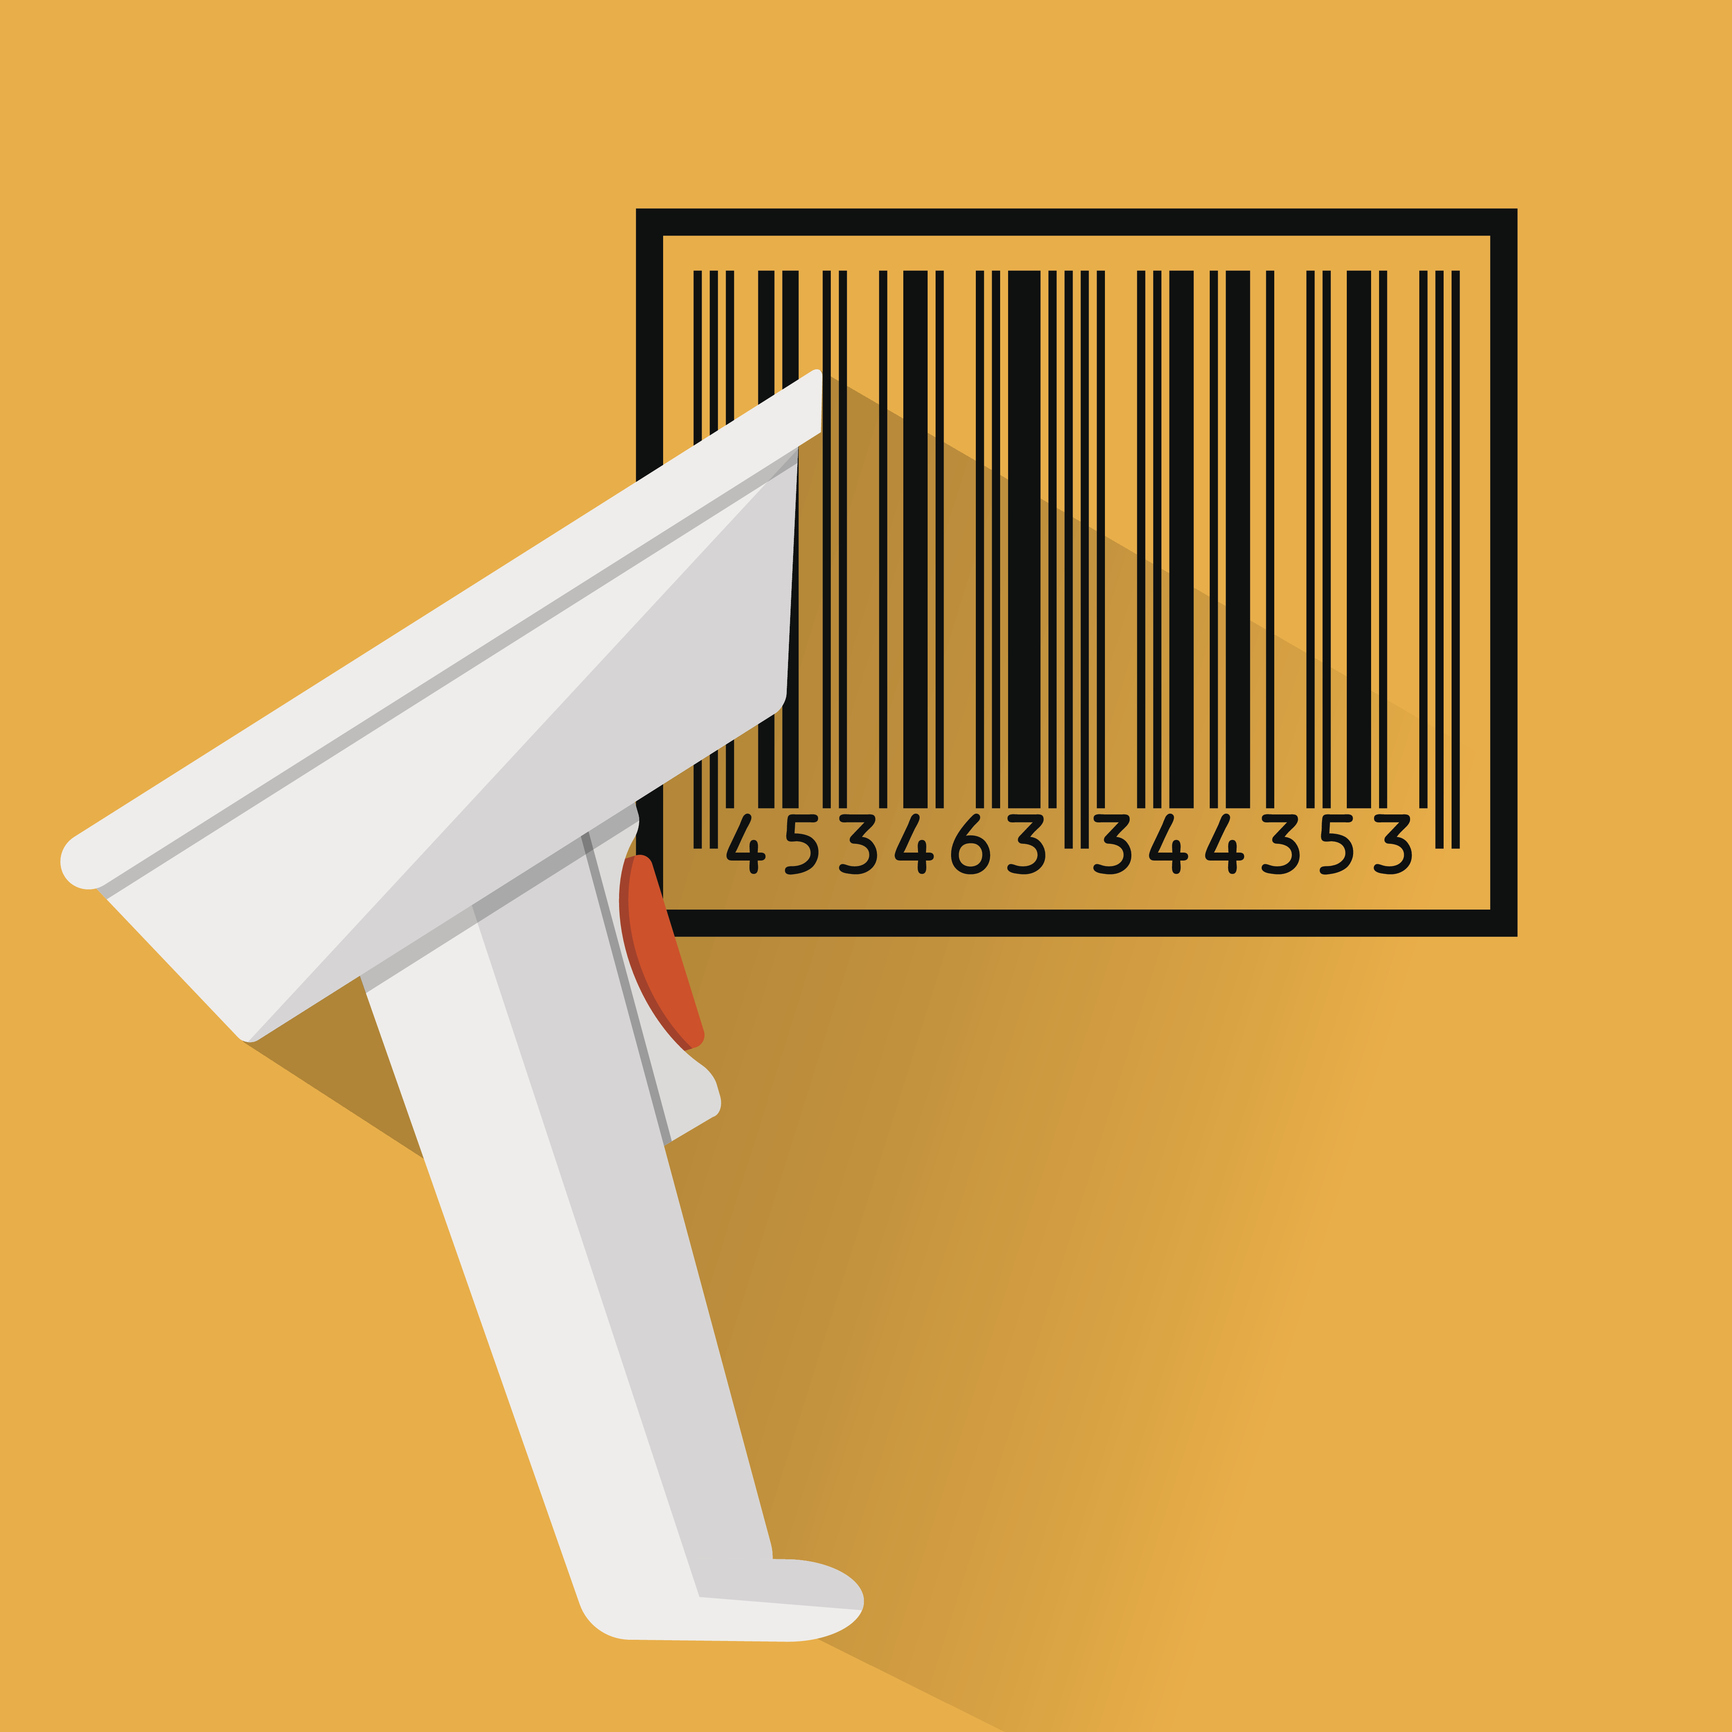 Buying guide for Bluetooth barcode scanners